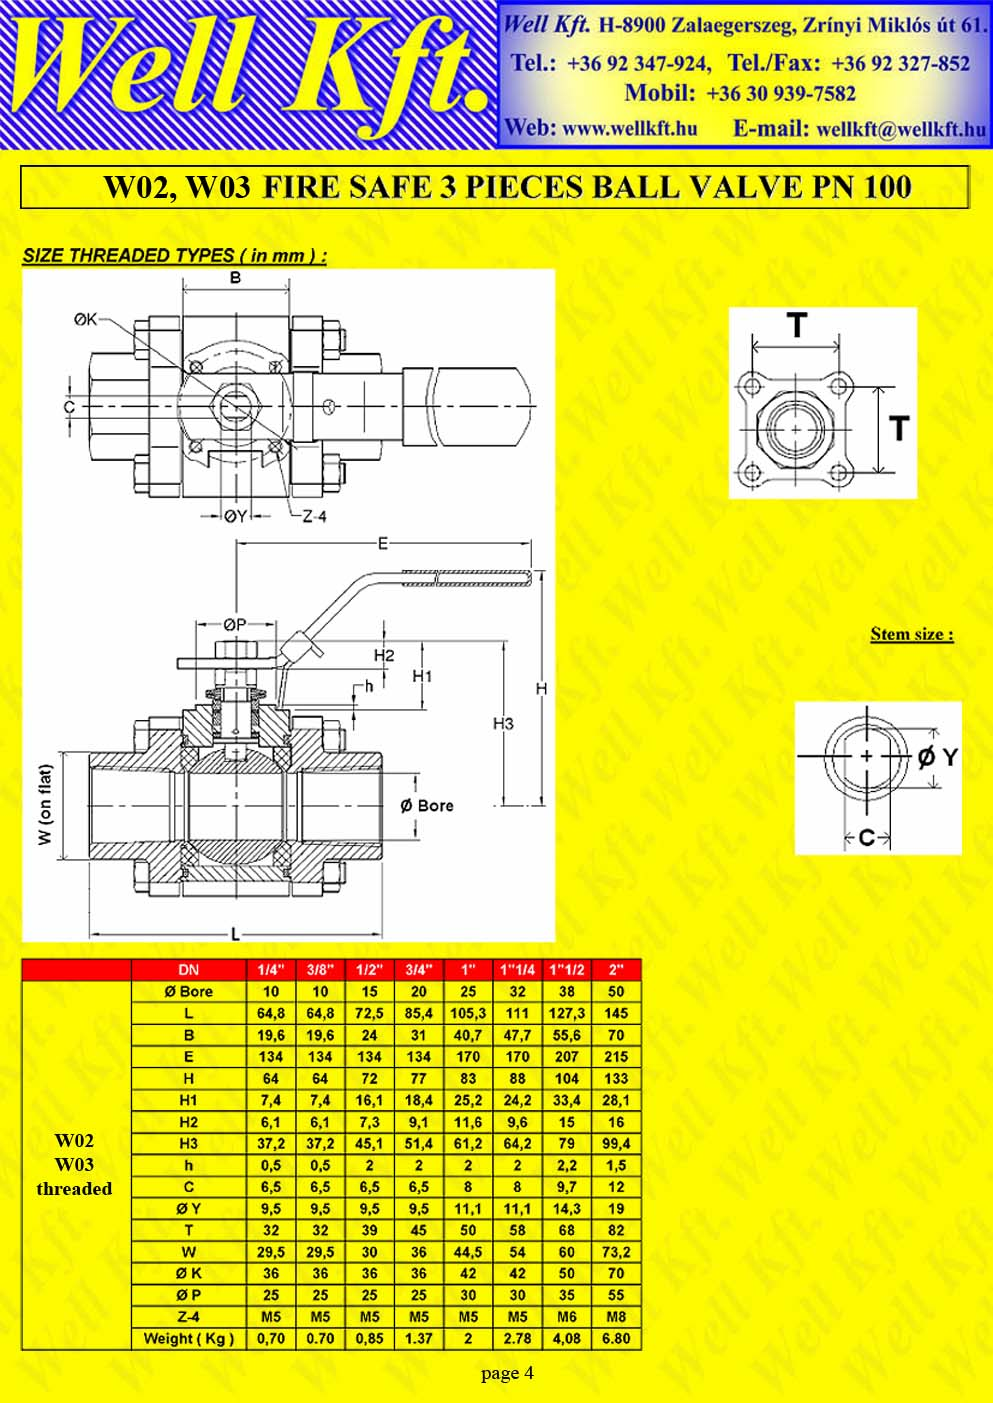 Fire safe 3 pieces ball valve ss., carbon steel, ISO pad PN 100-140 (4.)